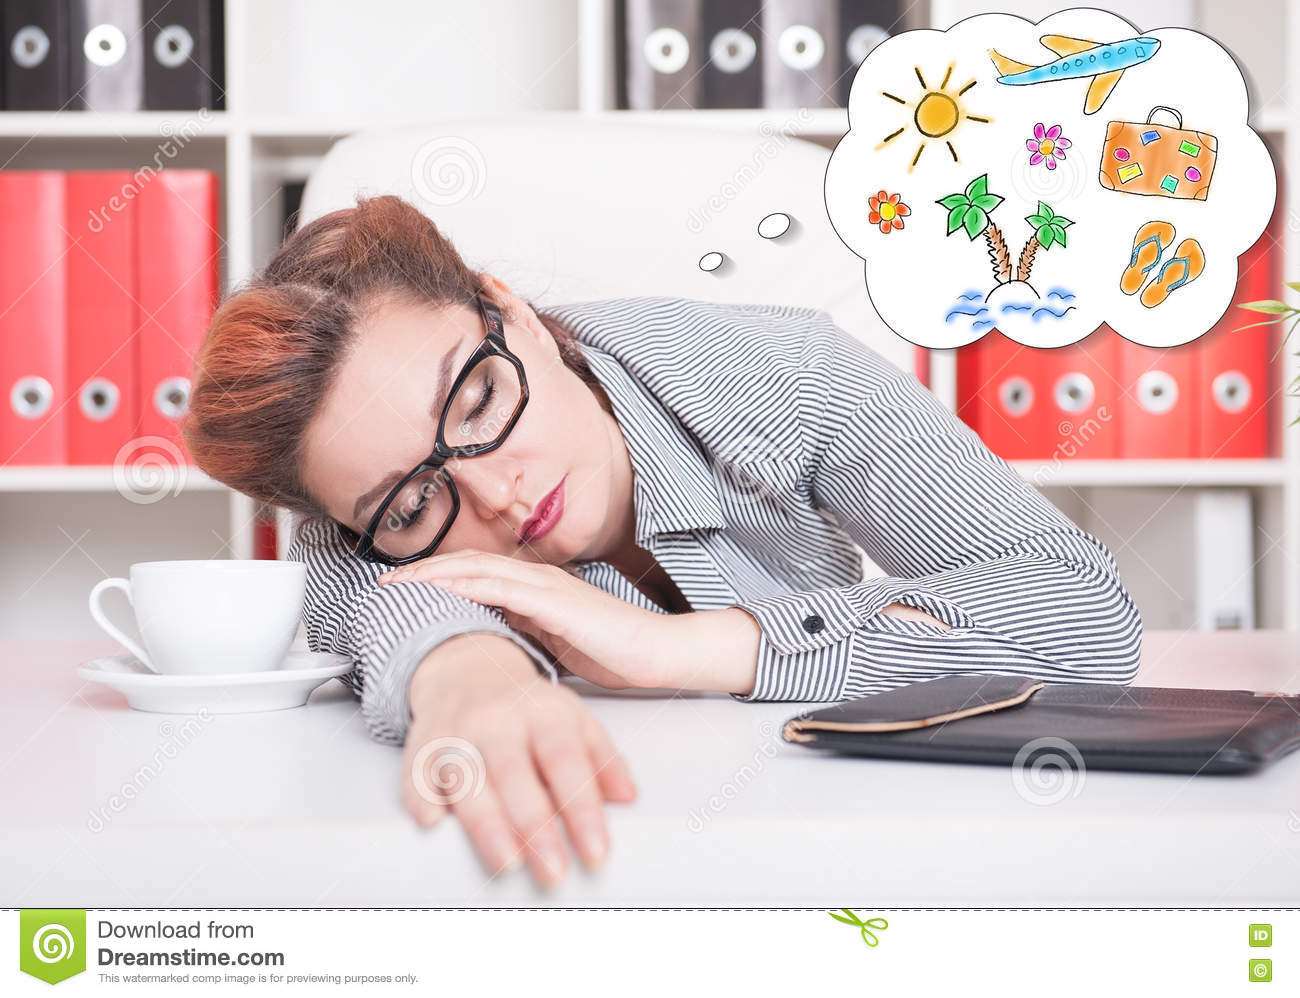 Tired business woman sleeping and dreaming about vacation in off